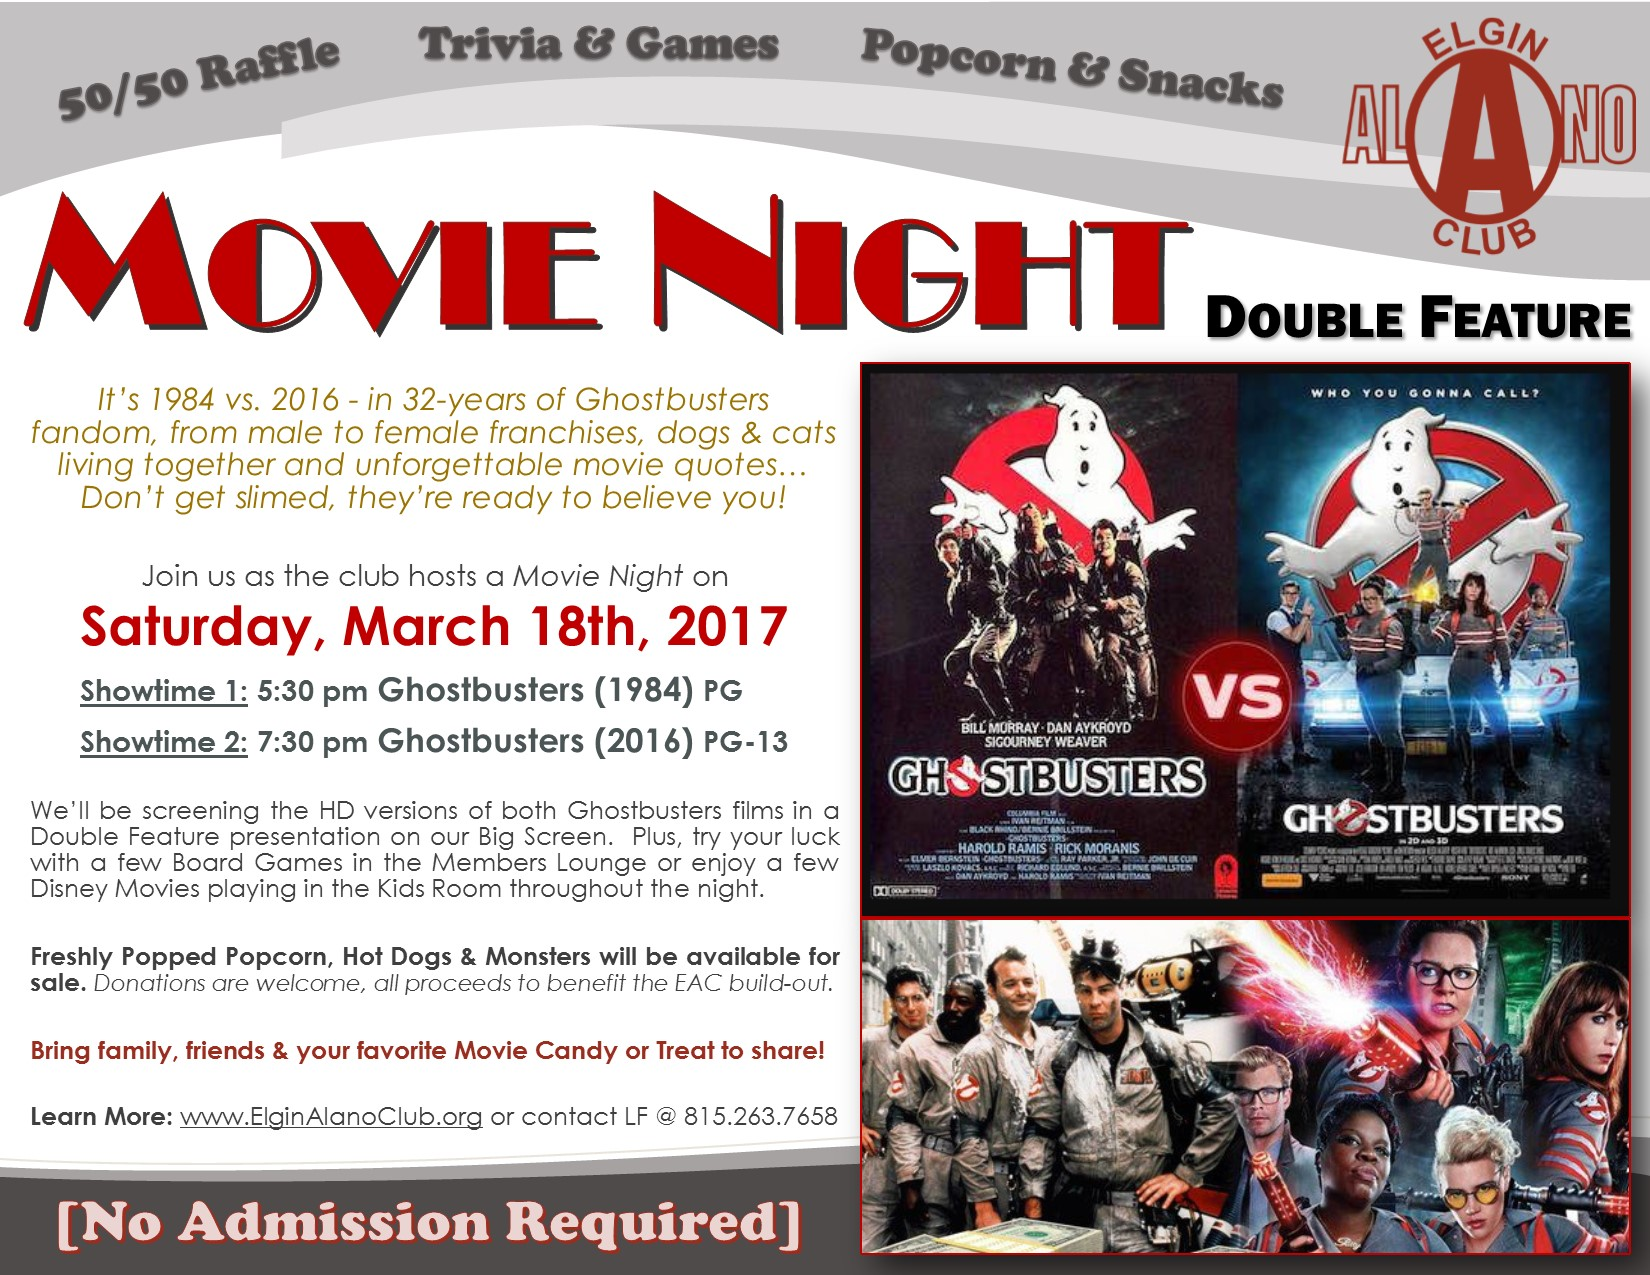 MOVIE NIGHT Ghostbusters Double Feature 1